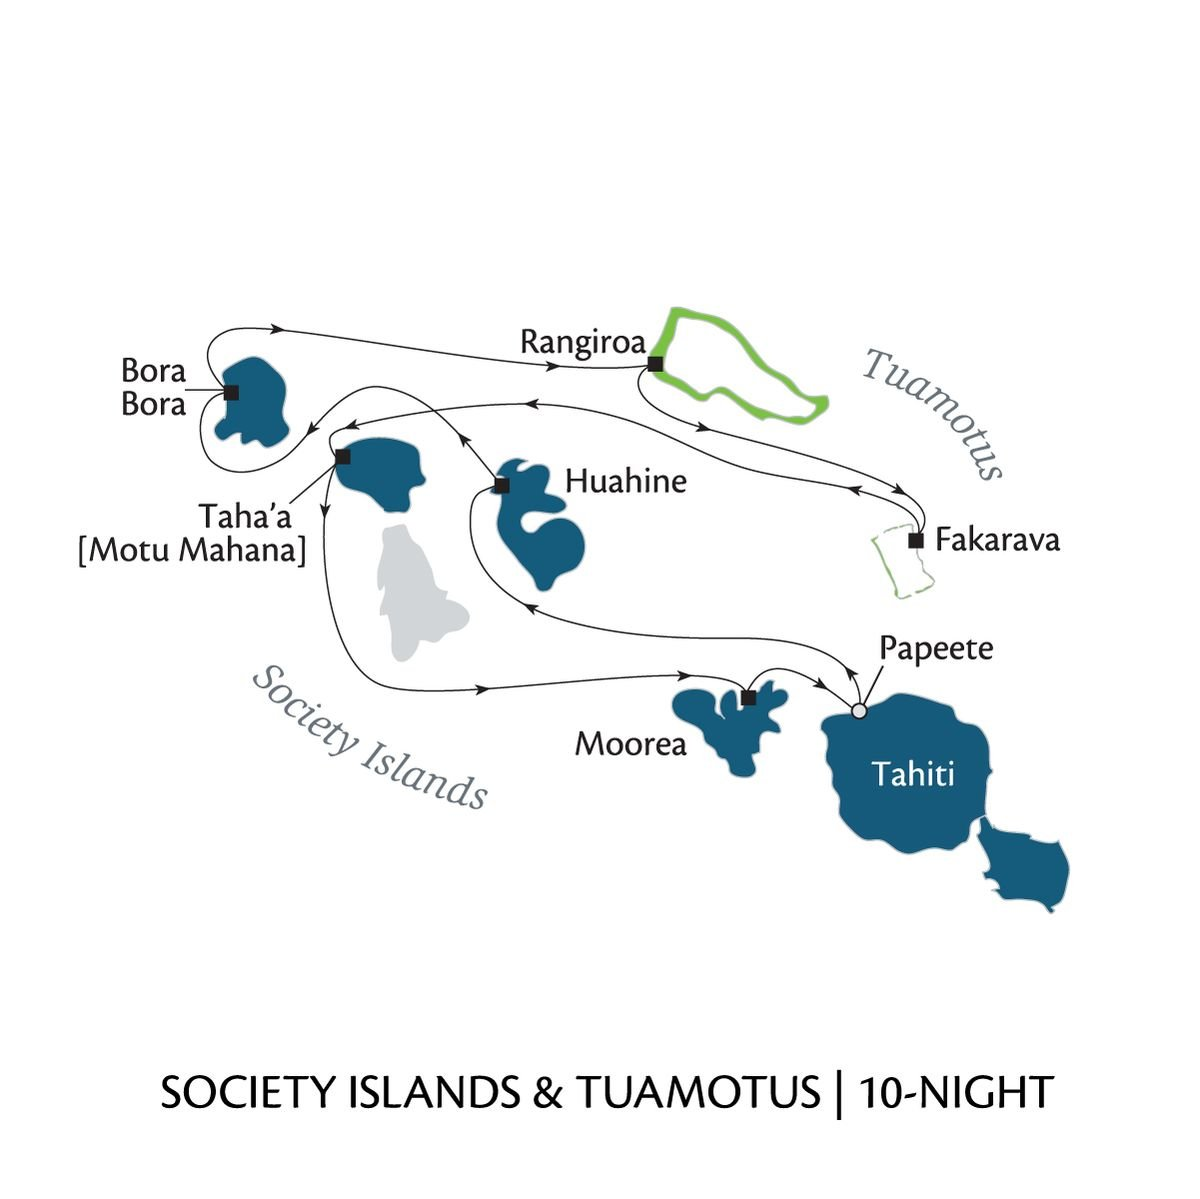 Society Islands and Tumotus - 10-night cruise